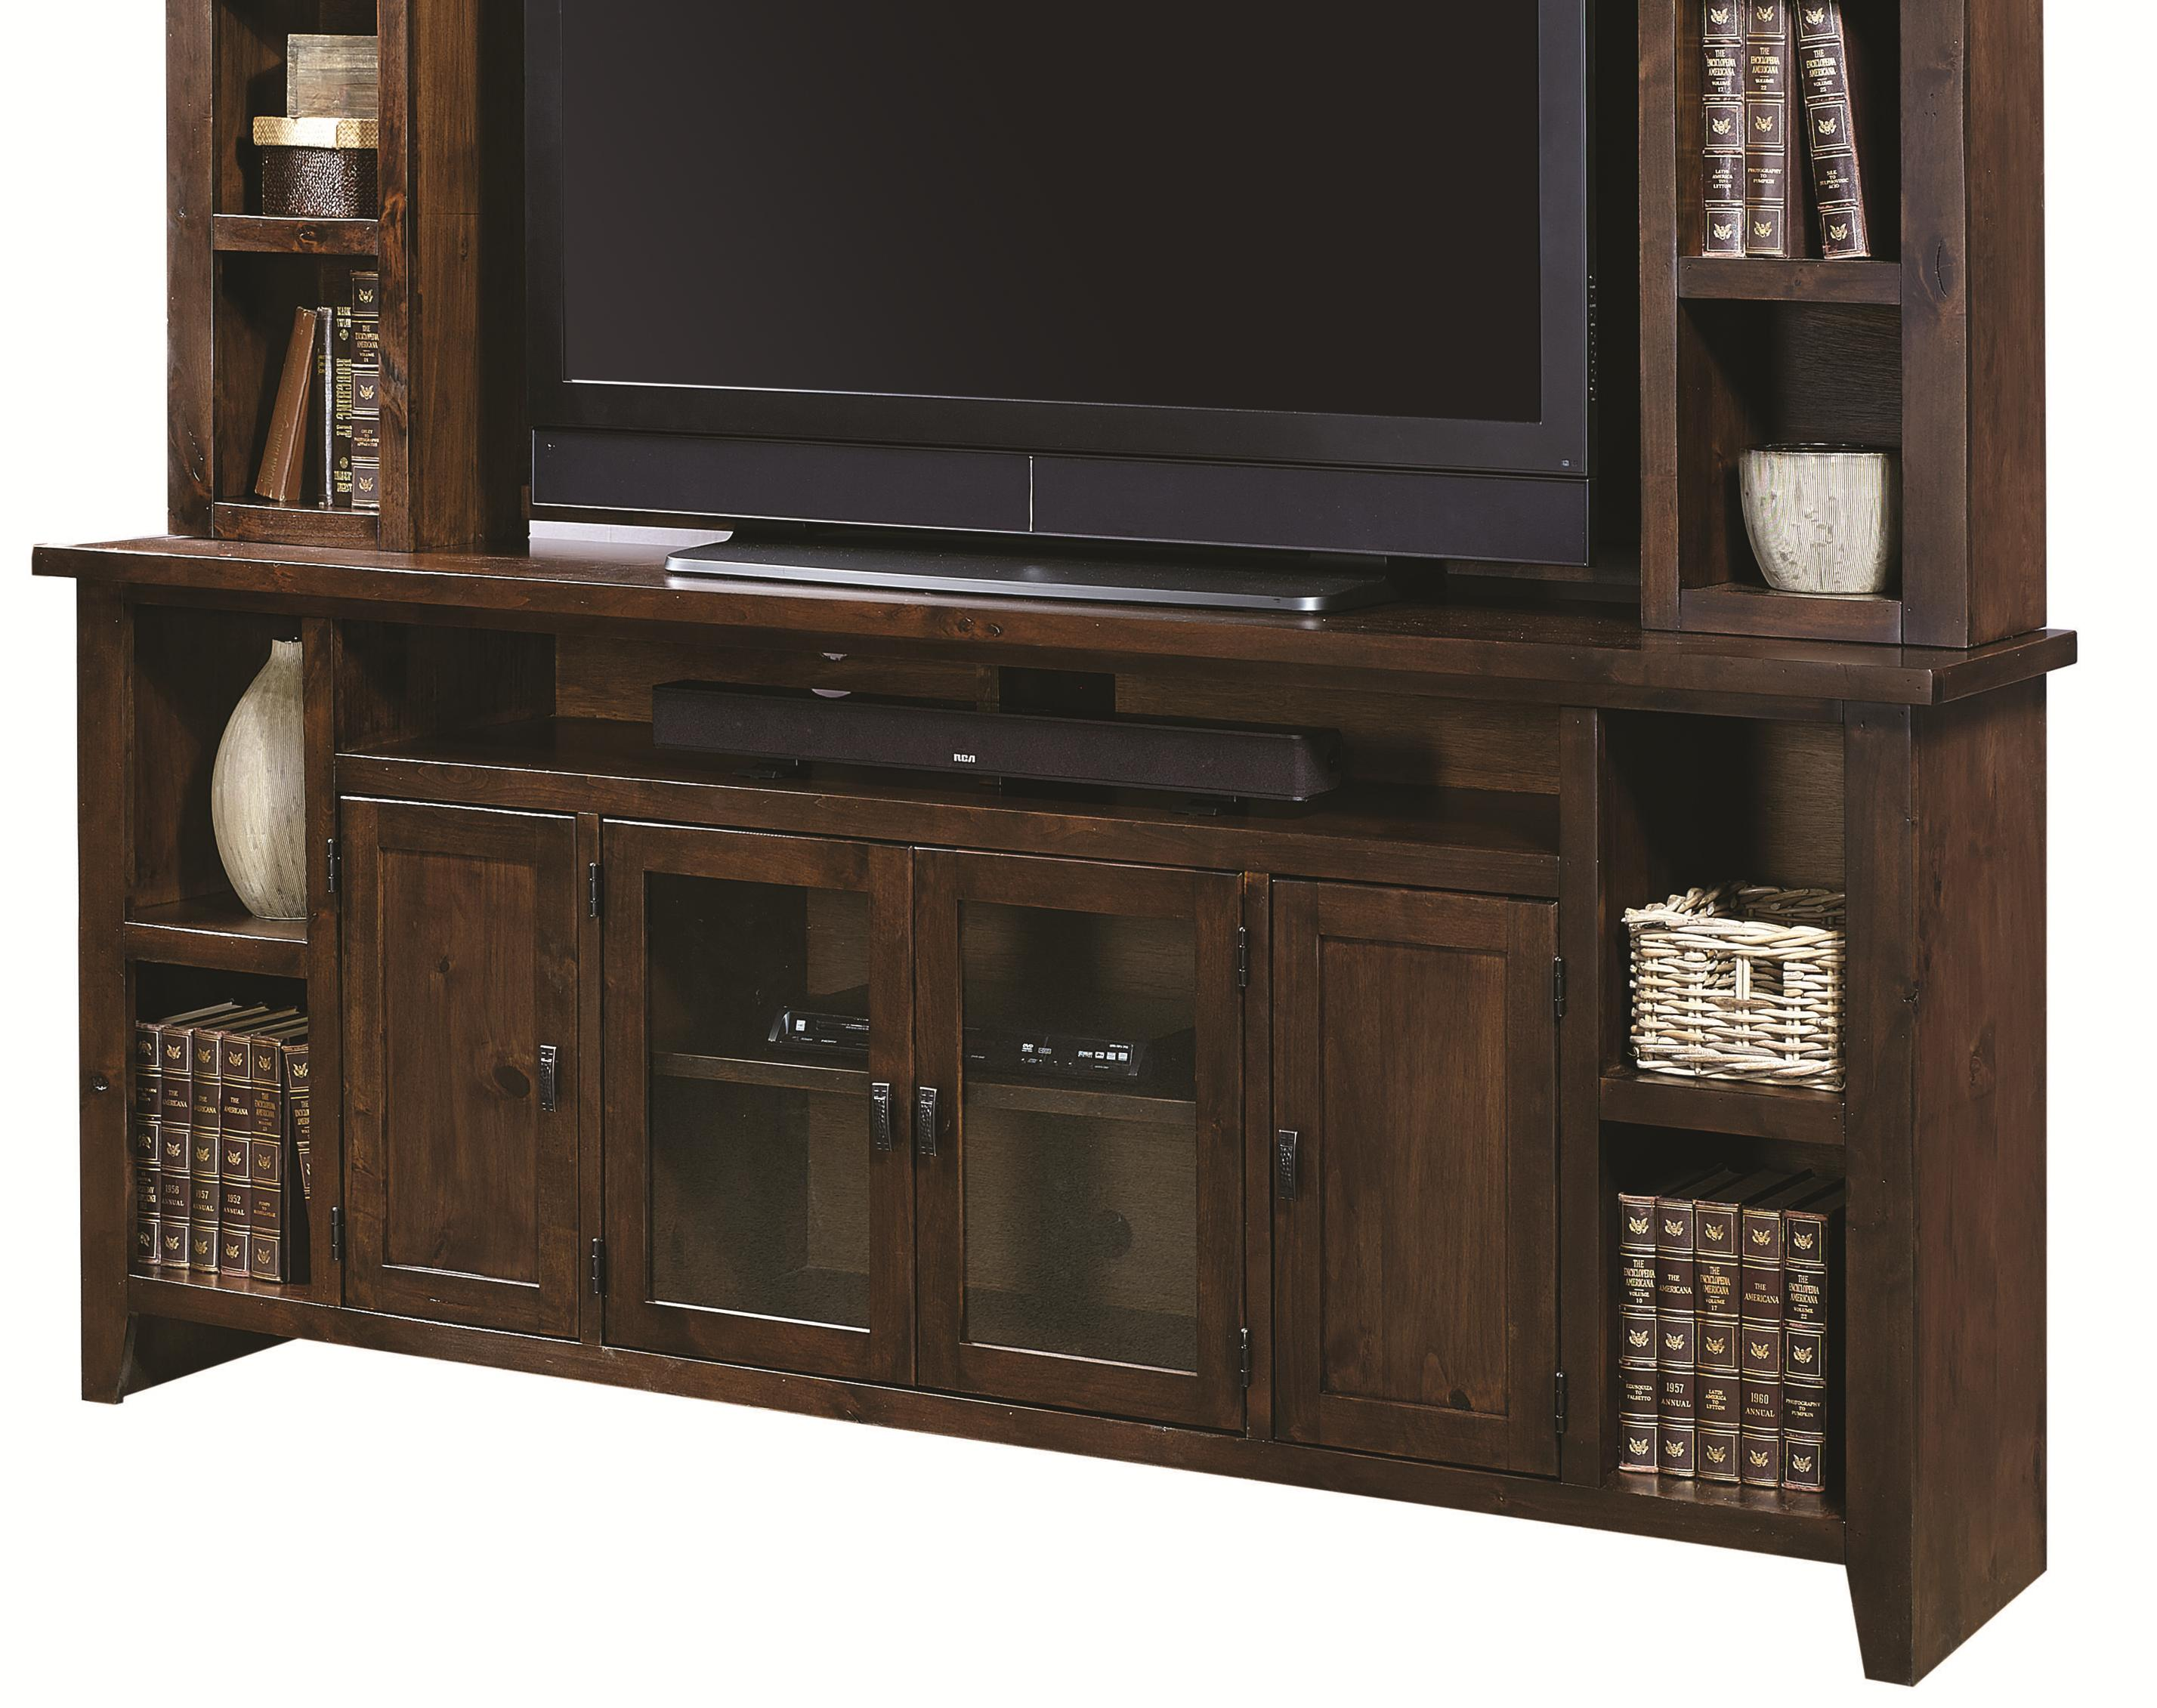 "Alder Grove 84"" Console by Aspenhome at Fashion Furniture"